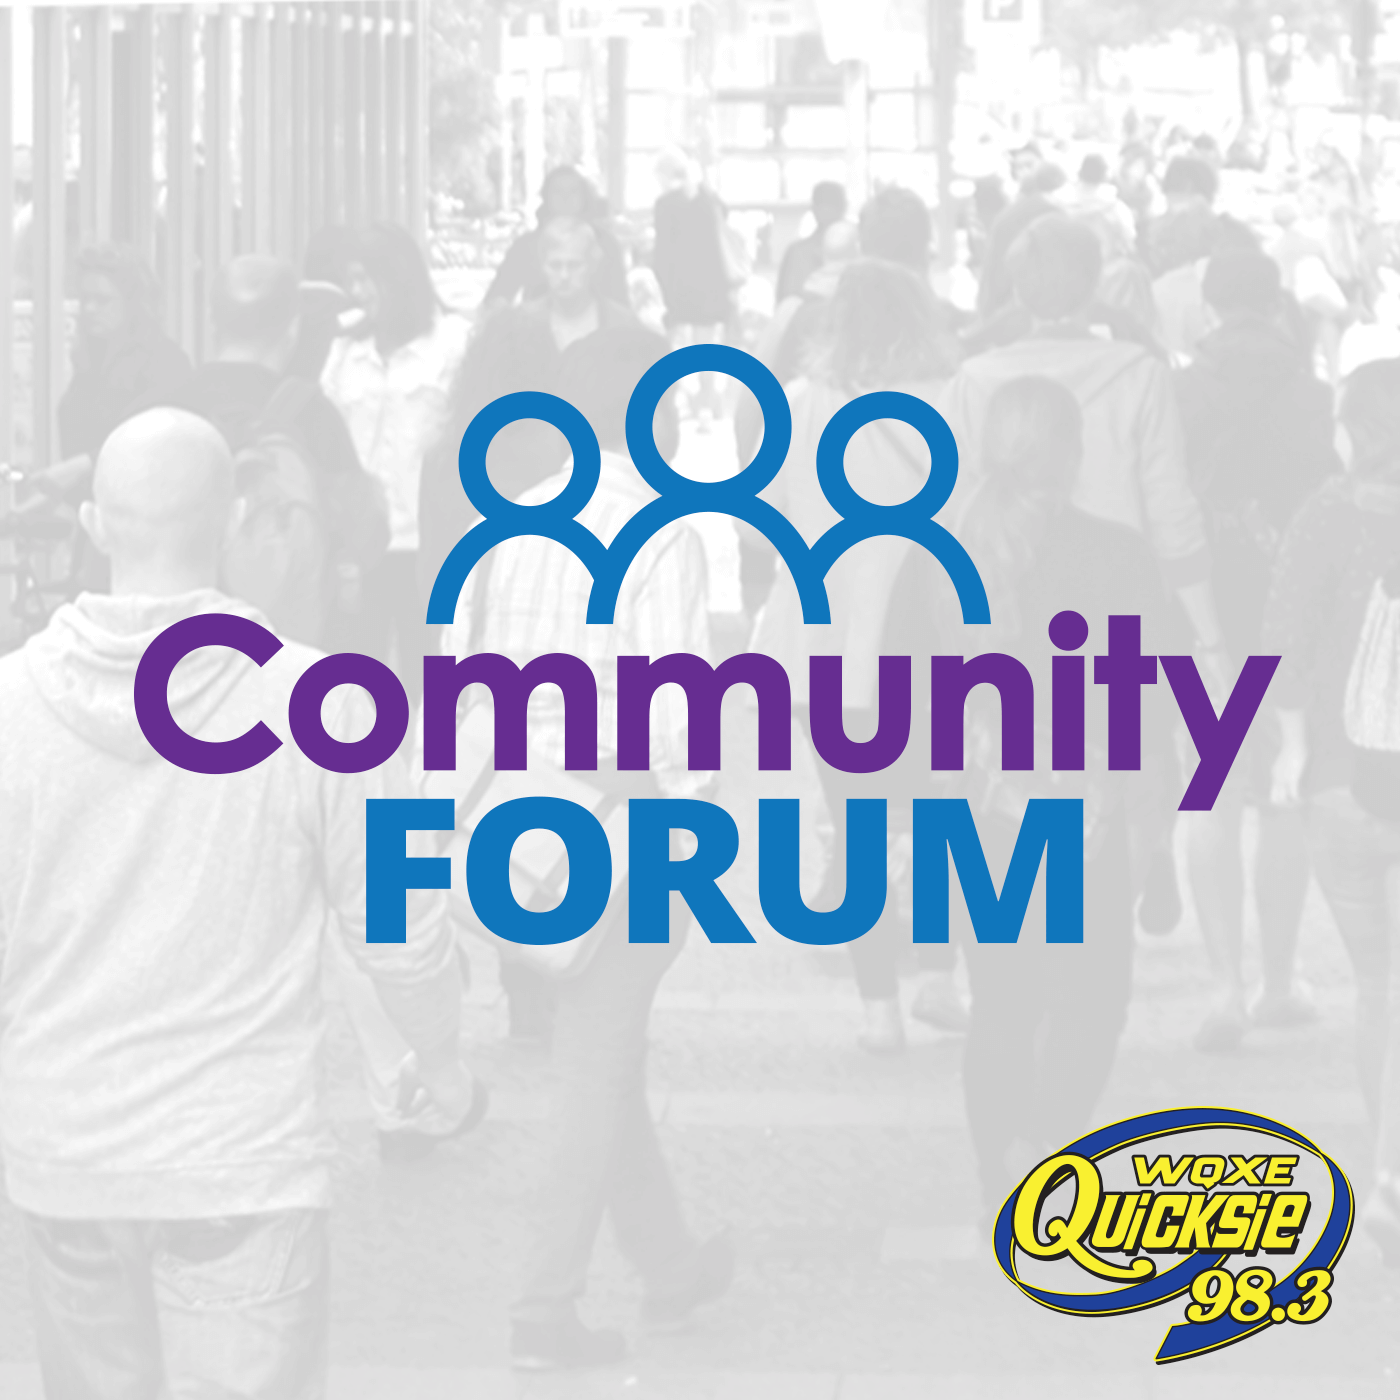 Community Forum – Quicksie 98.3